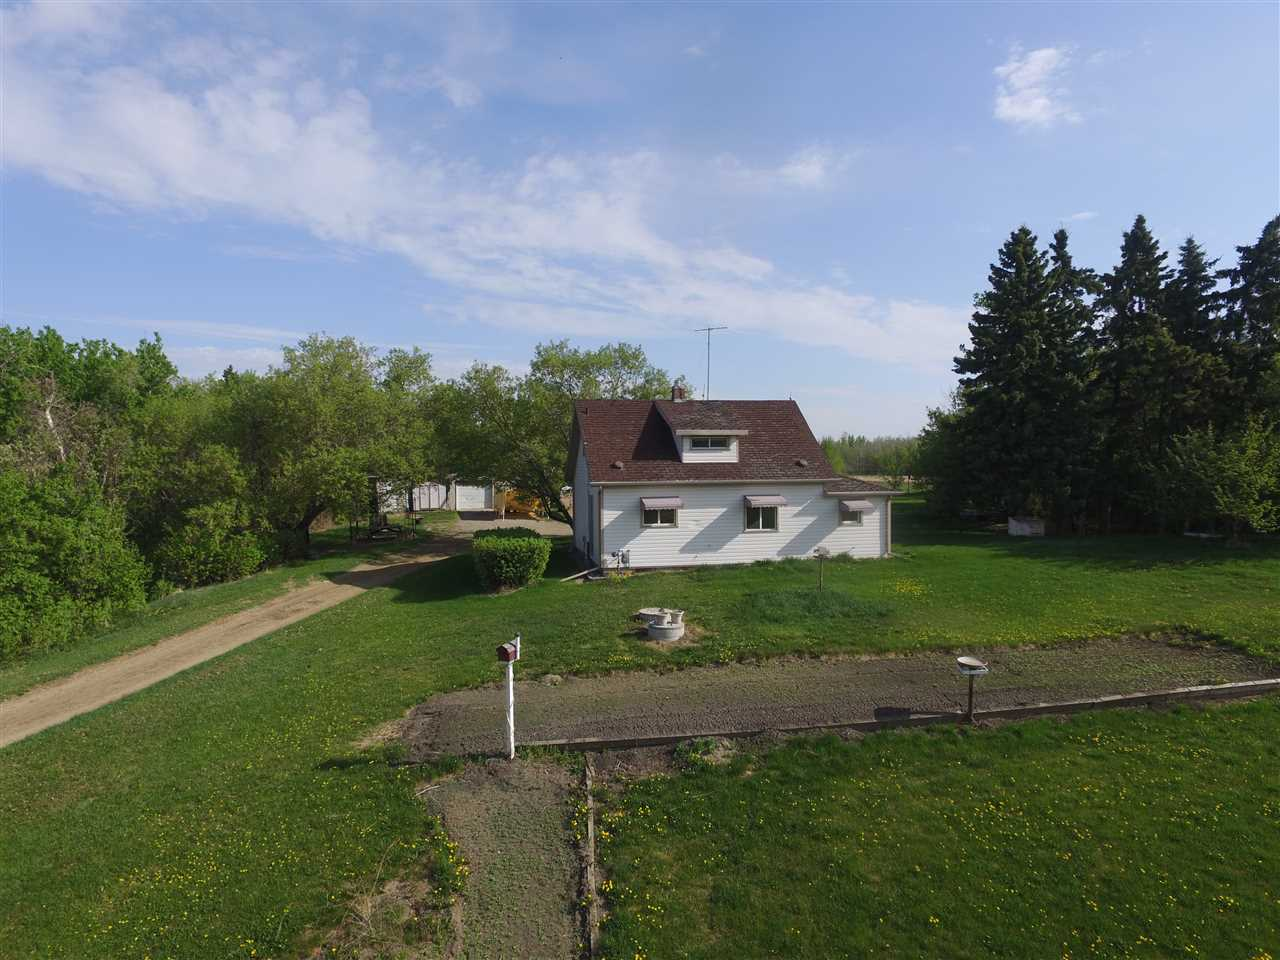 Main Photo: 23224 Hwy 623: Rural Leduc County House for sale : MLS®# E4111396